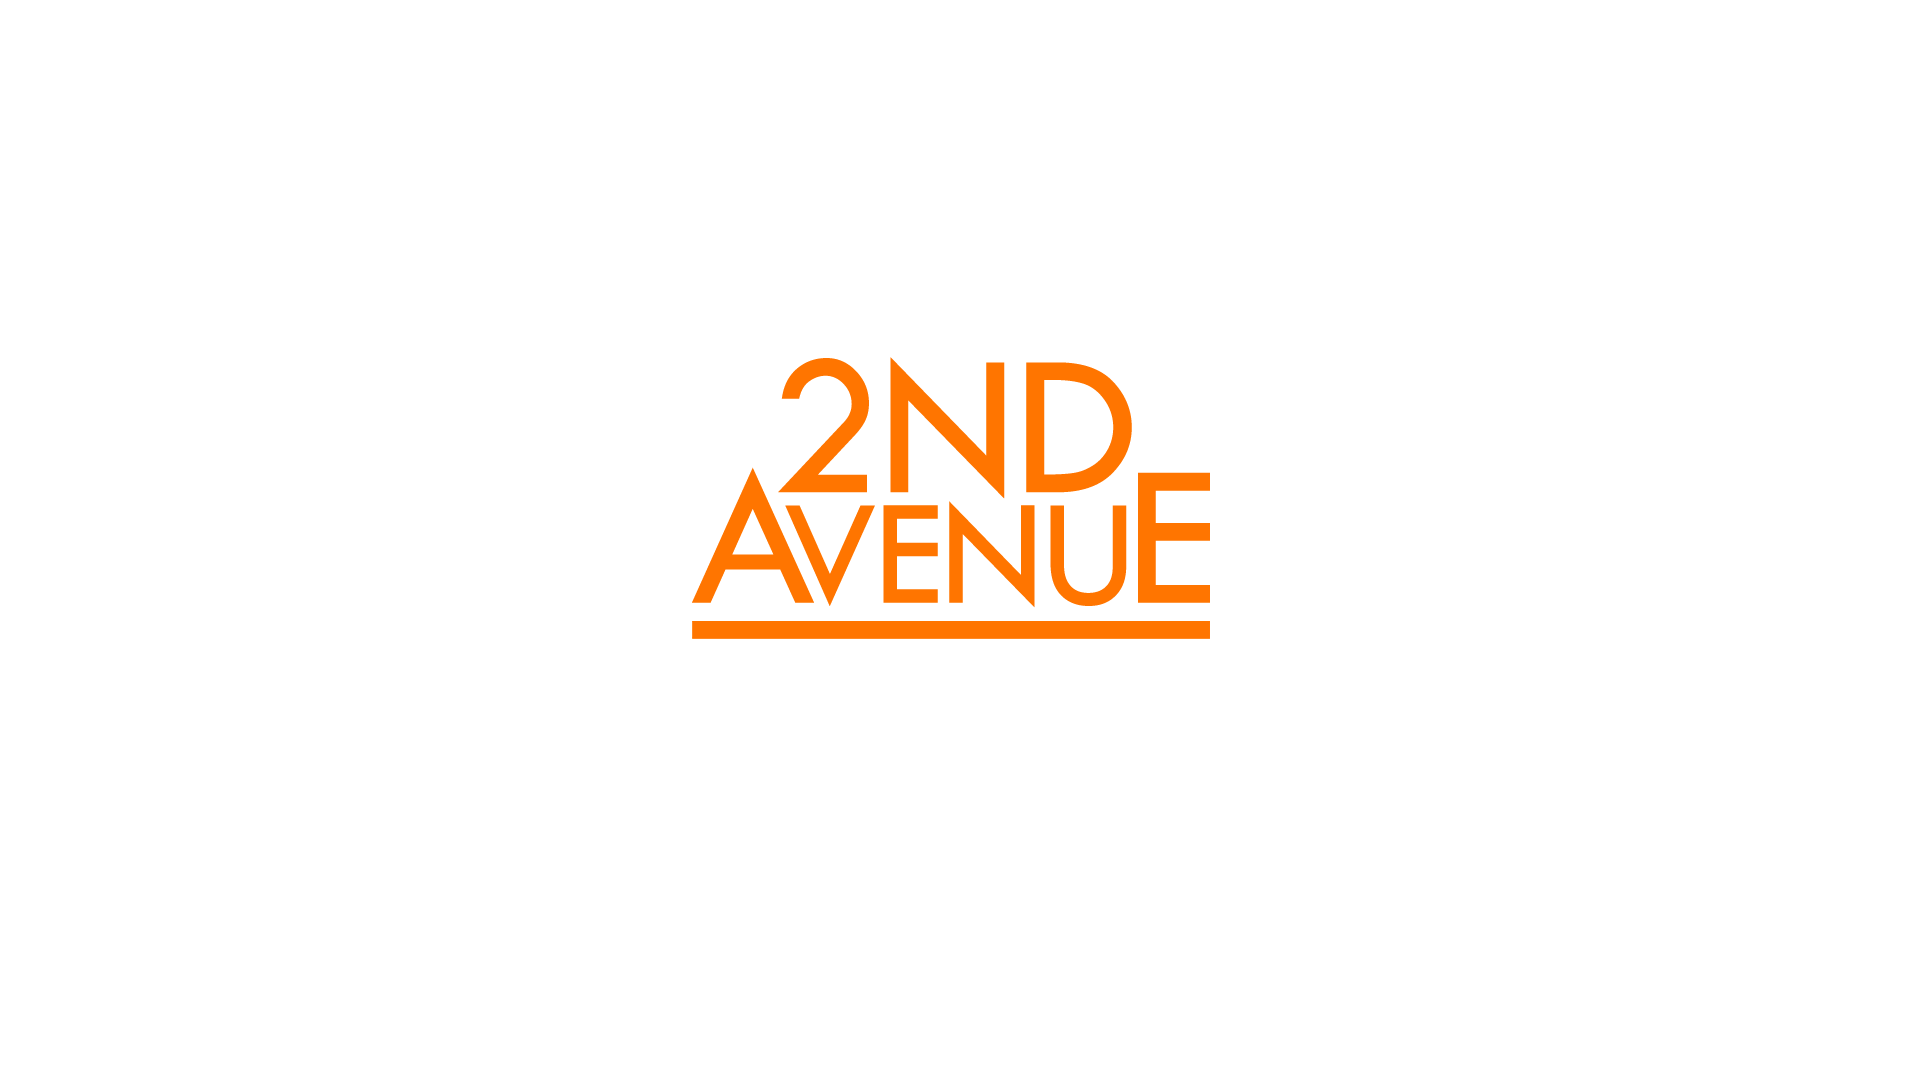 2nd Avenue